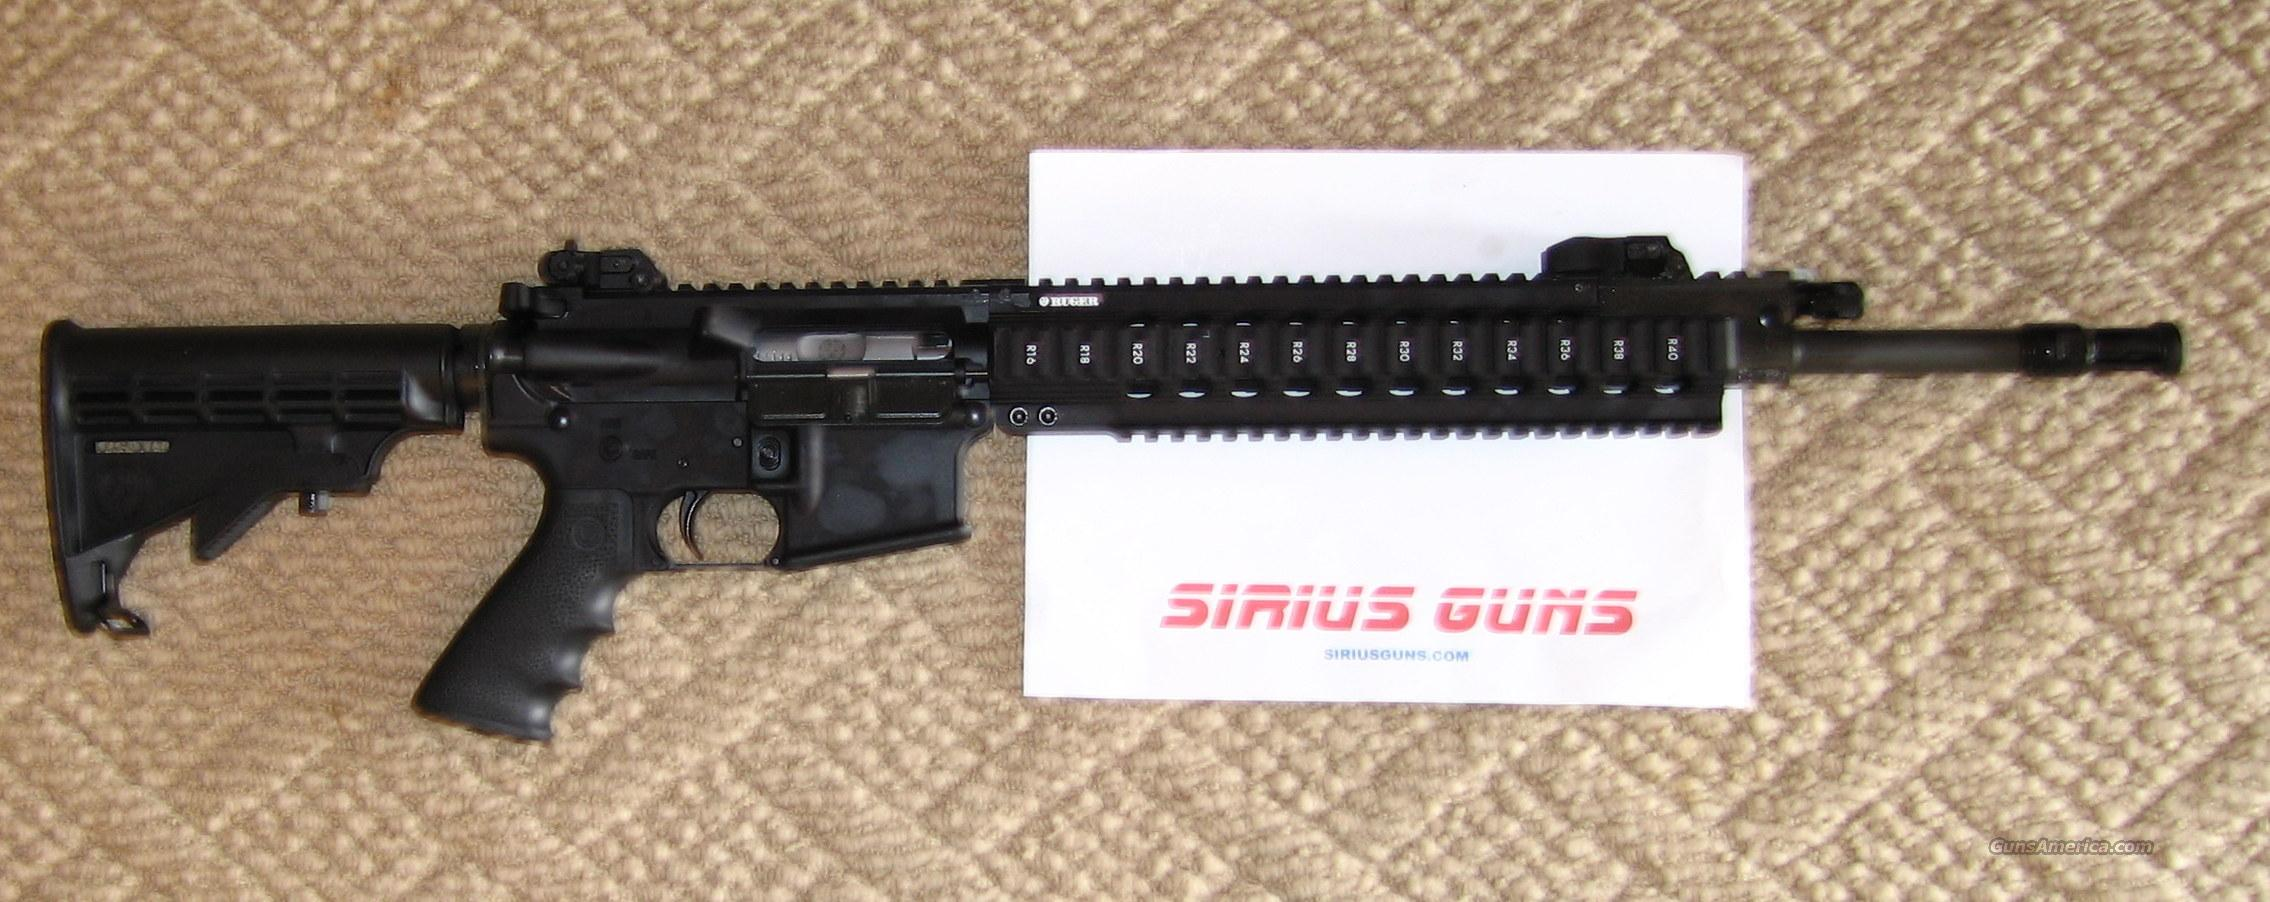 RUGER SR556 HIGH END MODEL 5902  with FOUR 30 round mags  Guns > Rifles > Ruger Rifles > SR-556